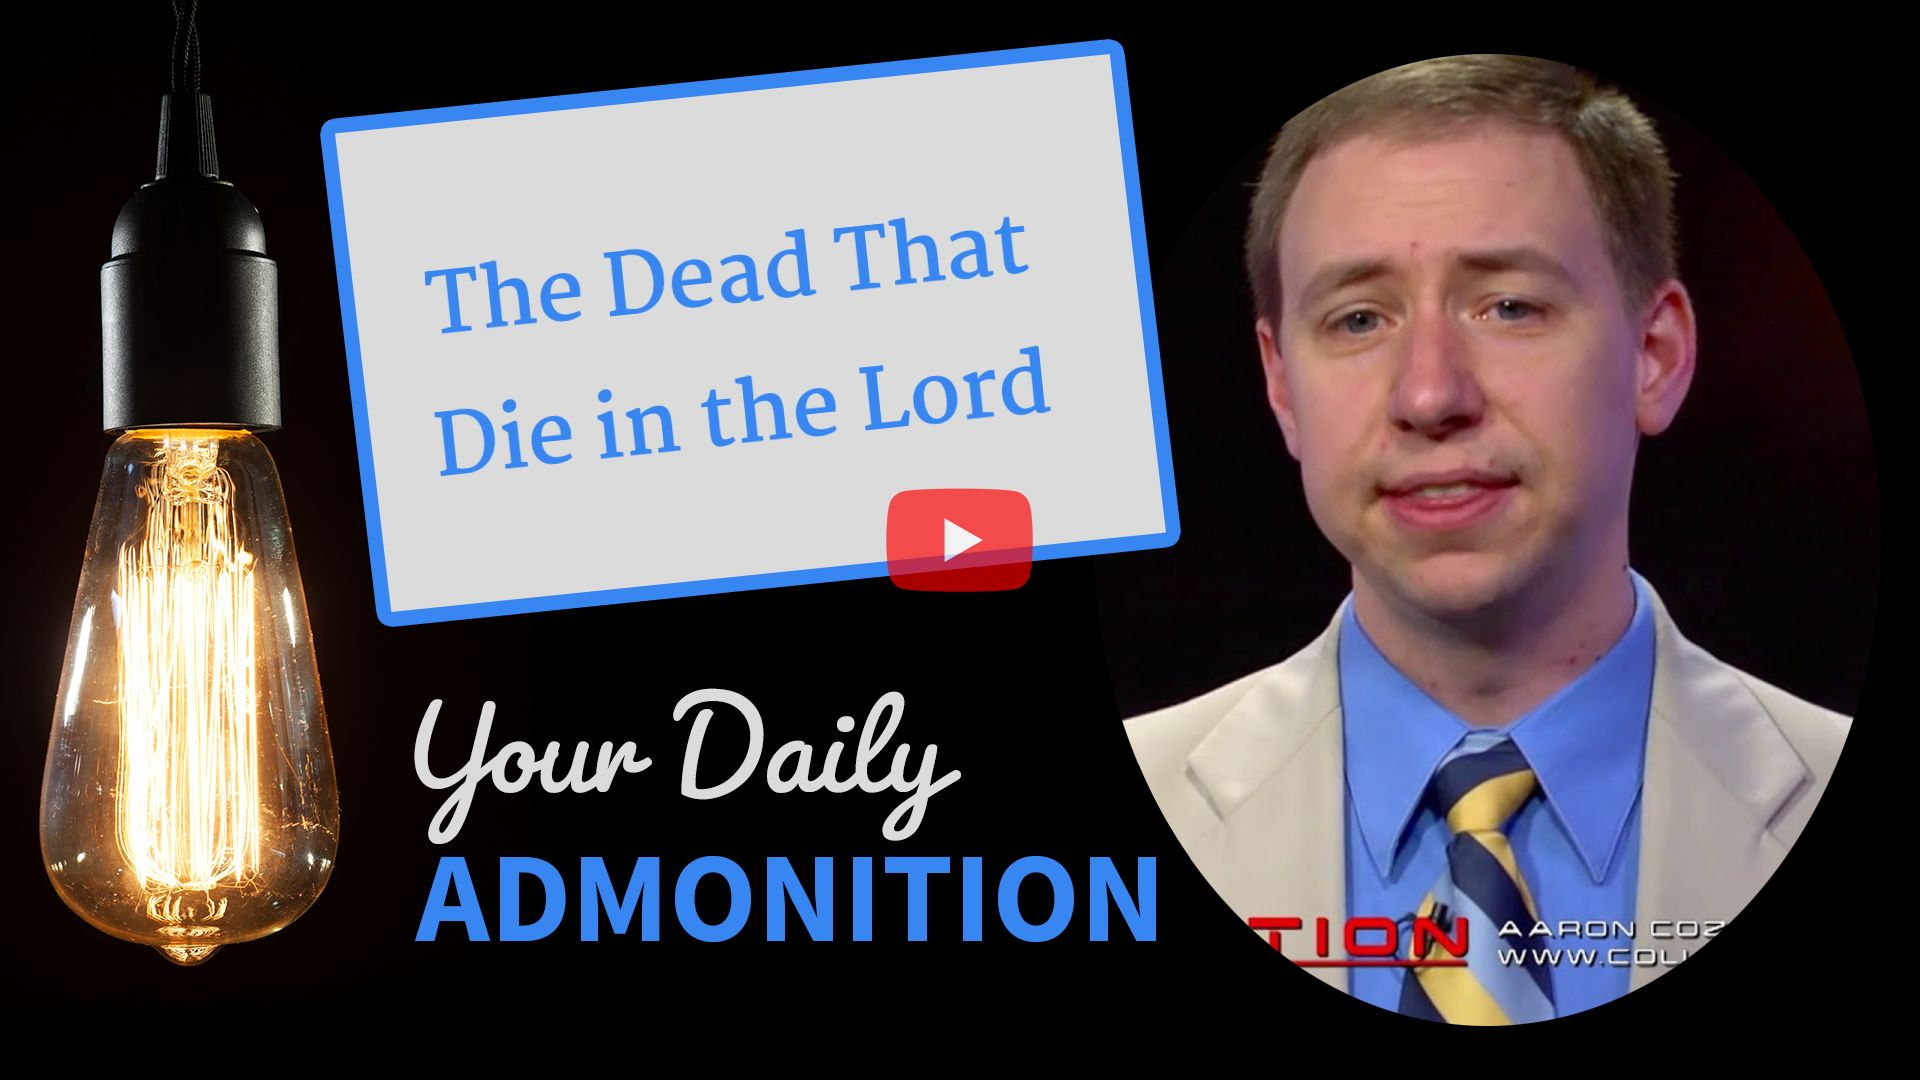 The Dead That Die in the Lord